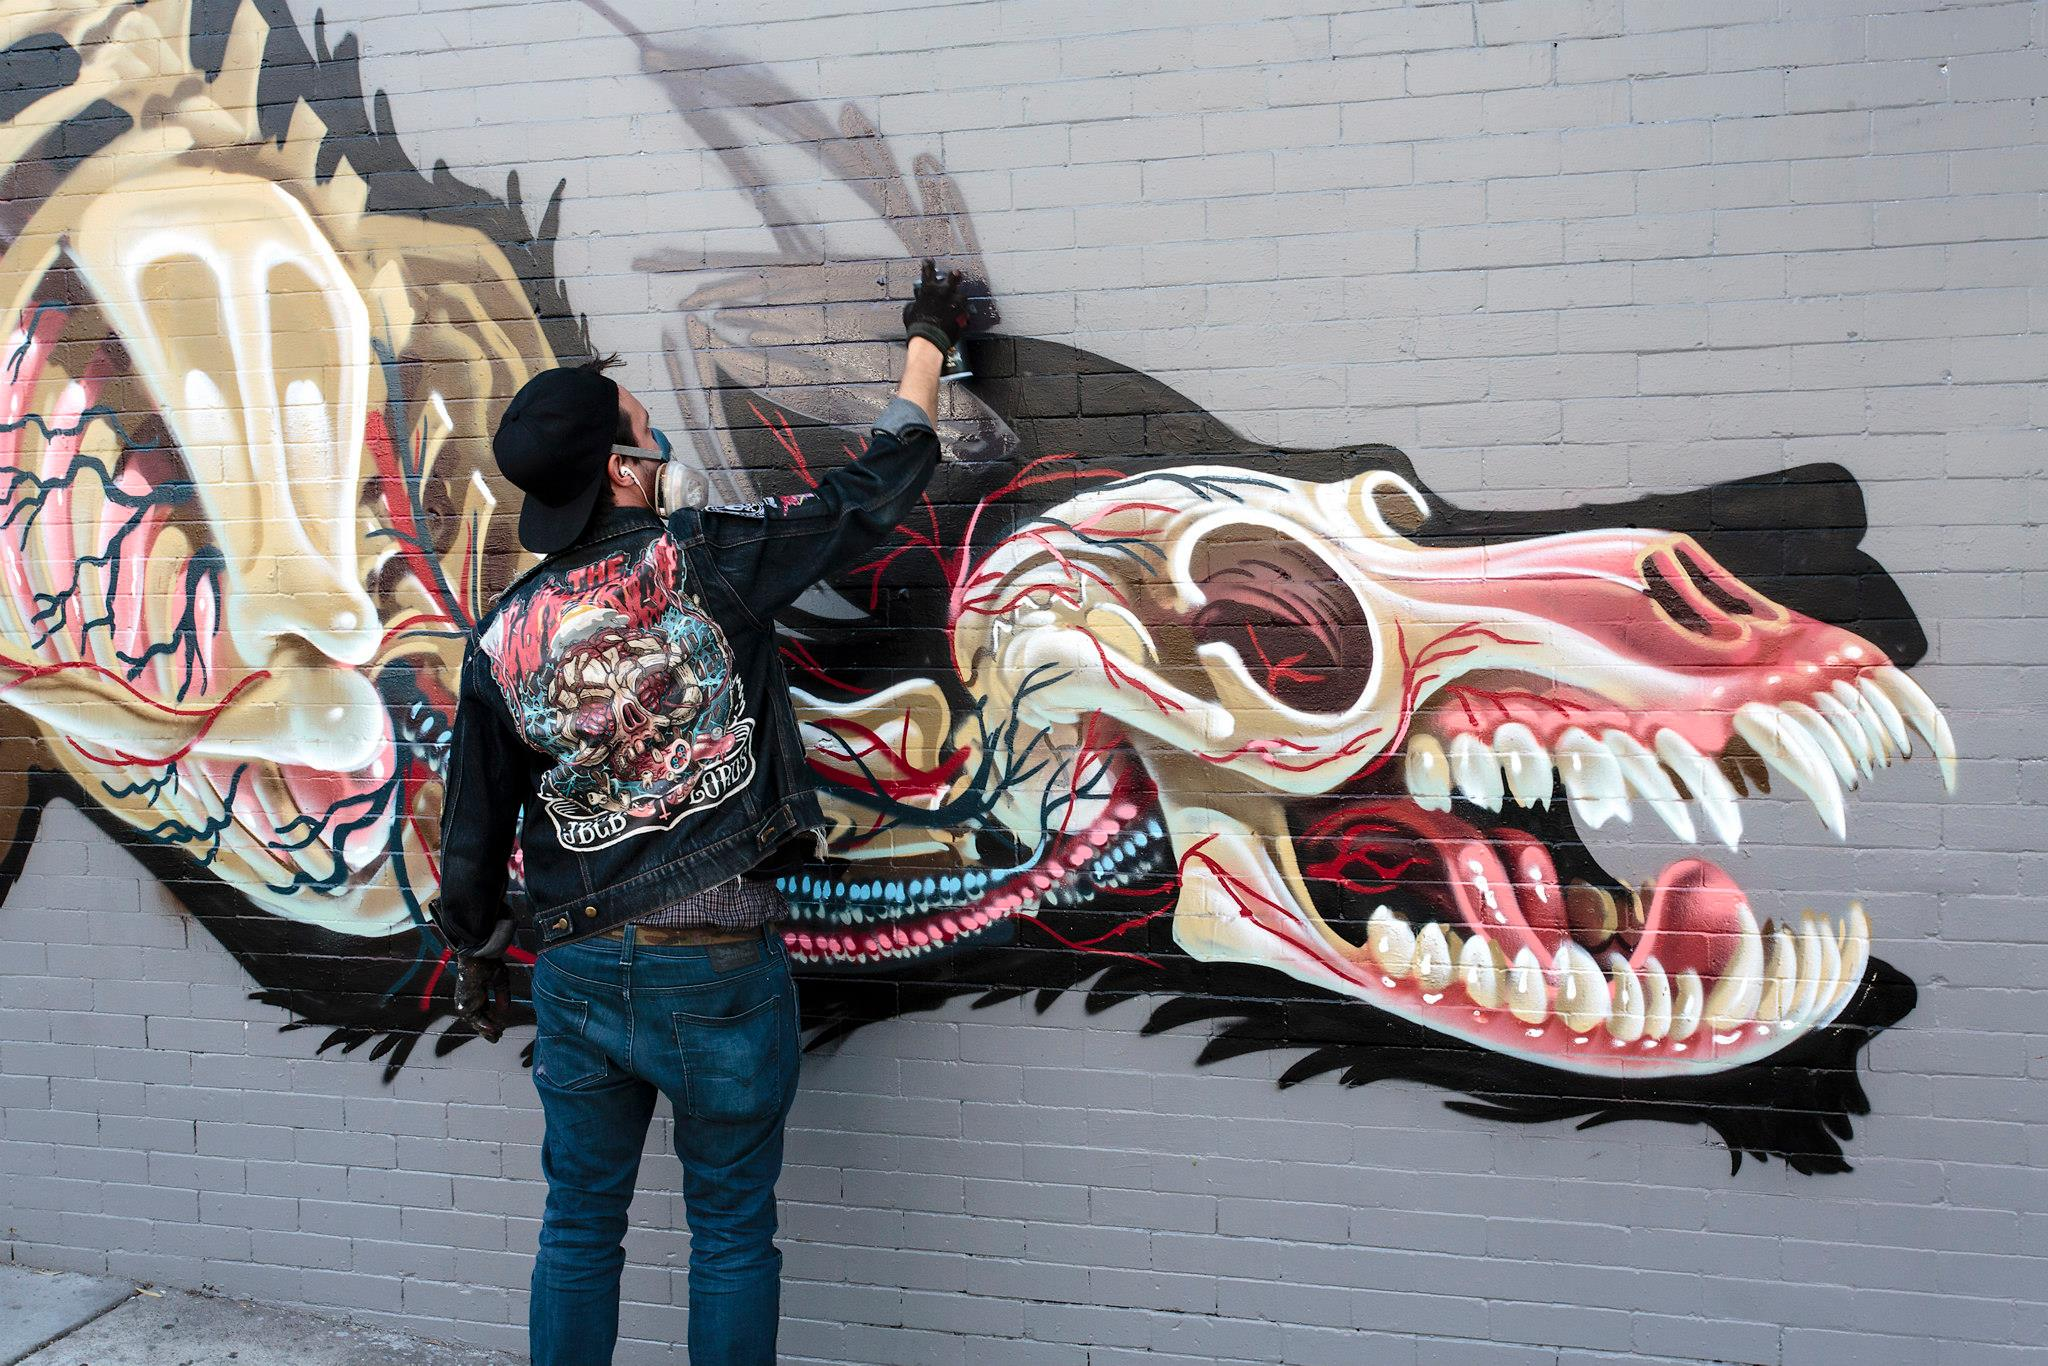 nychos-a-new-mural-in-san-fransisco-usa-04